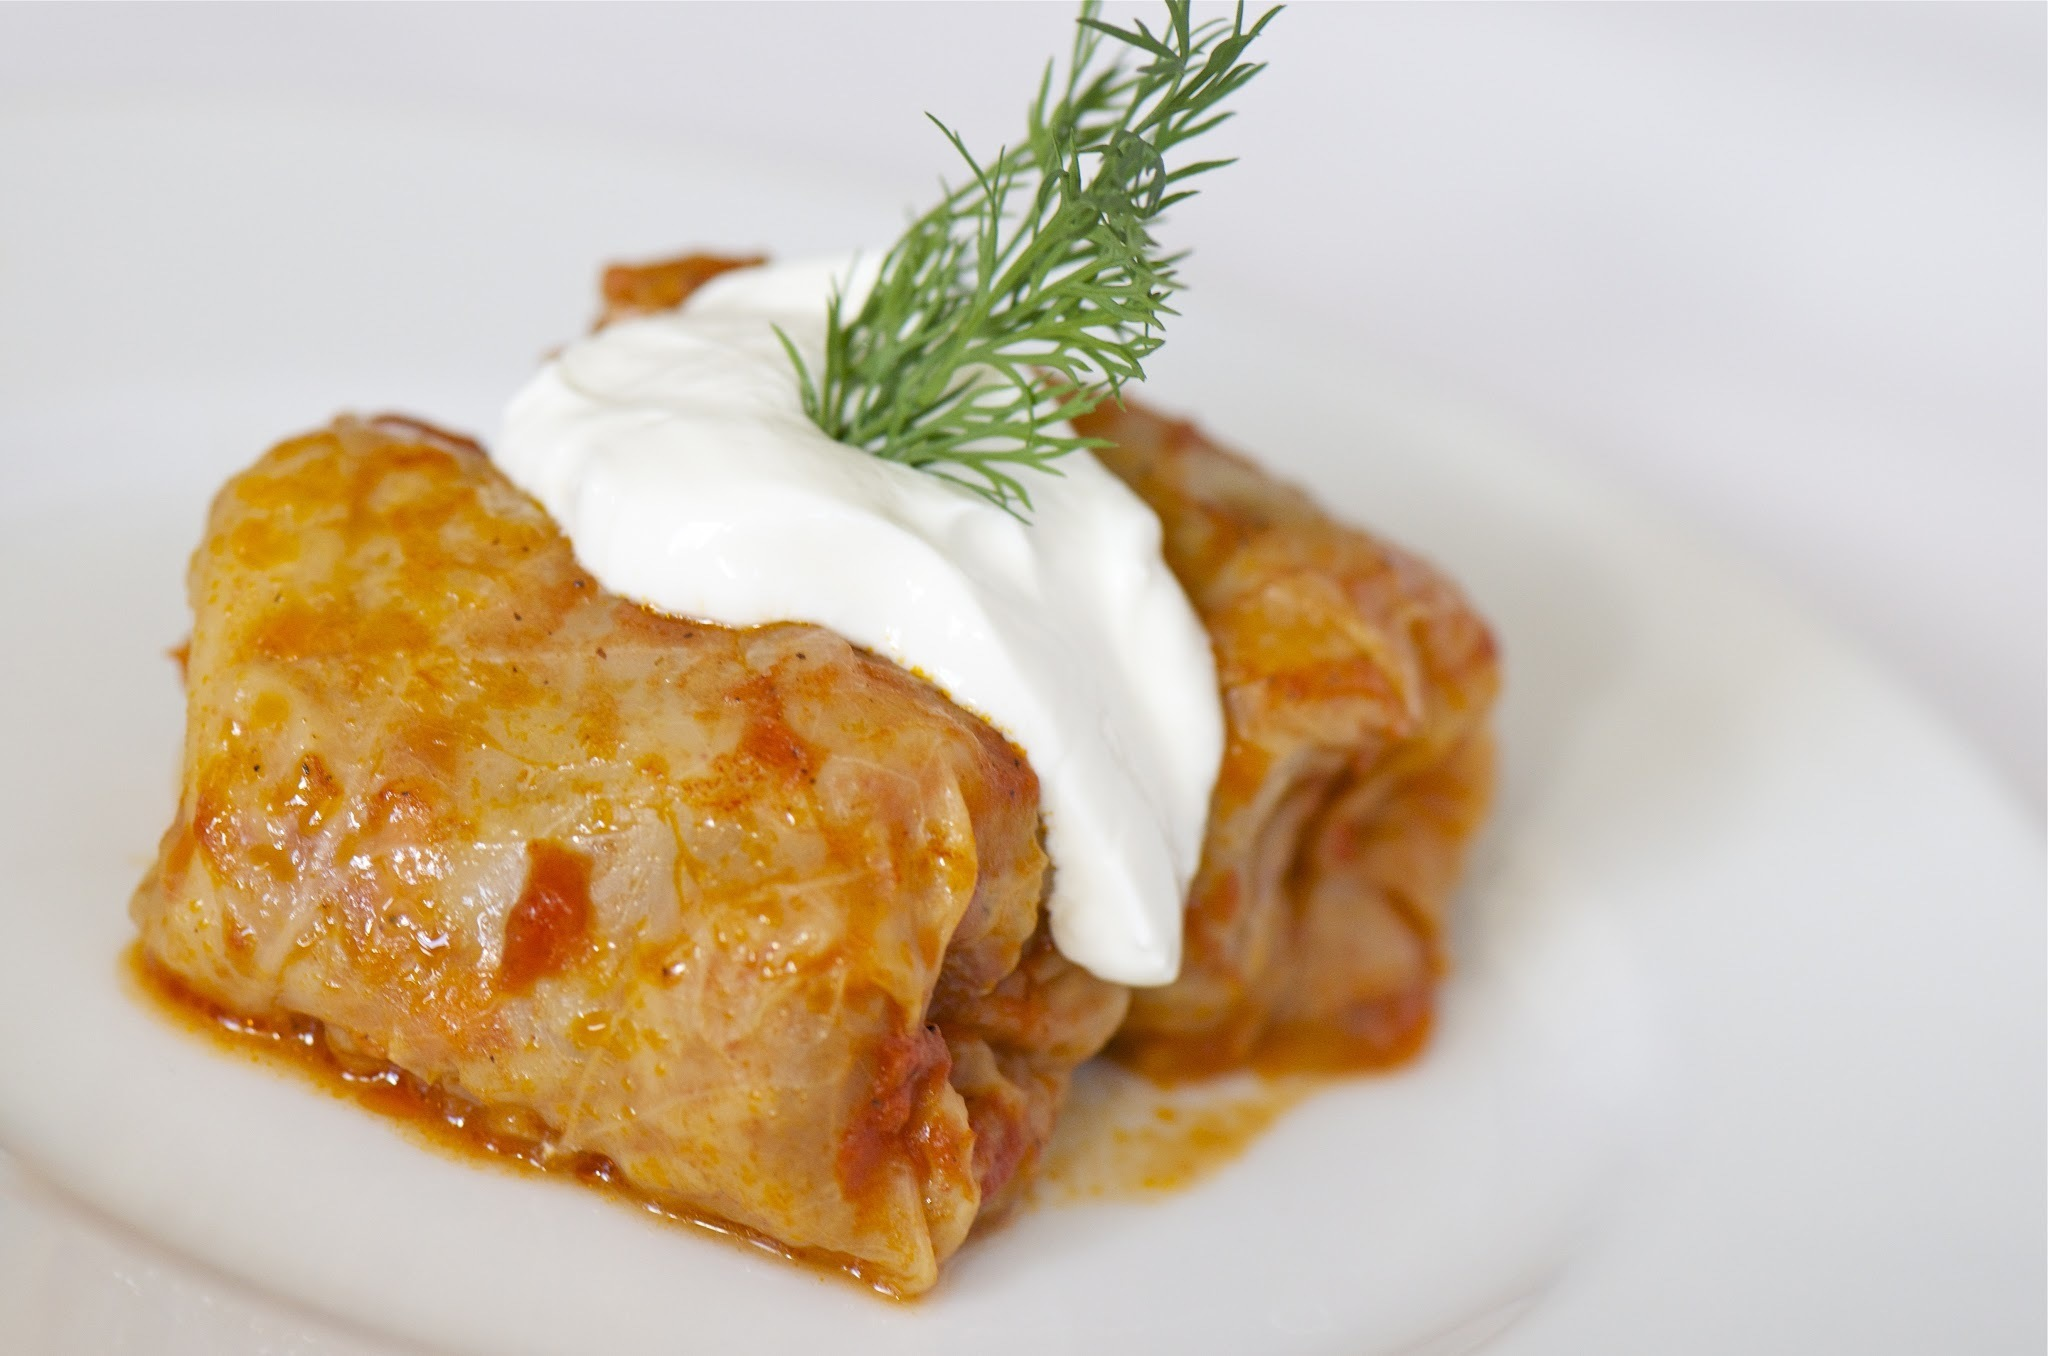 Stuffed pepper and Cabbage rolls (Golubtsy)-Голубцы